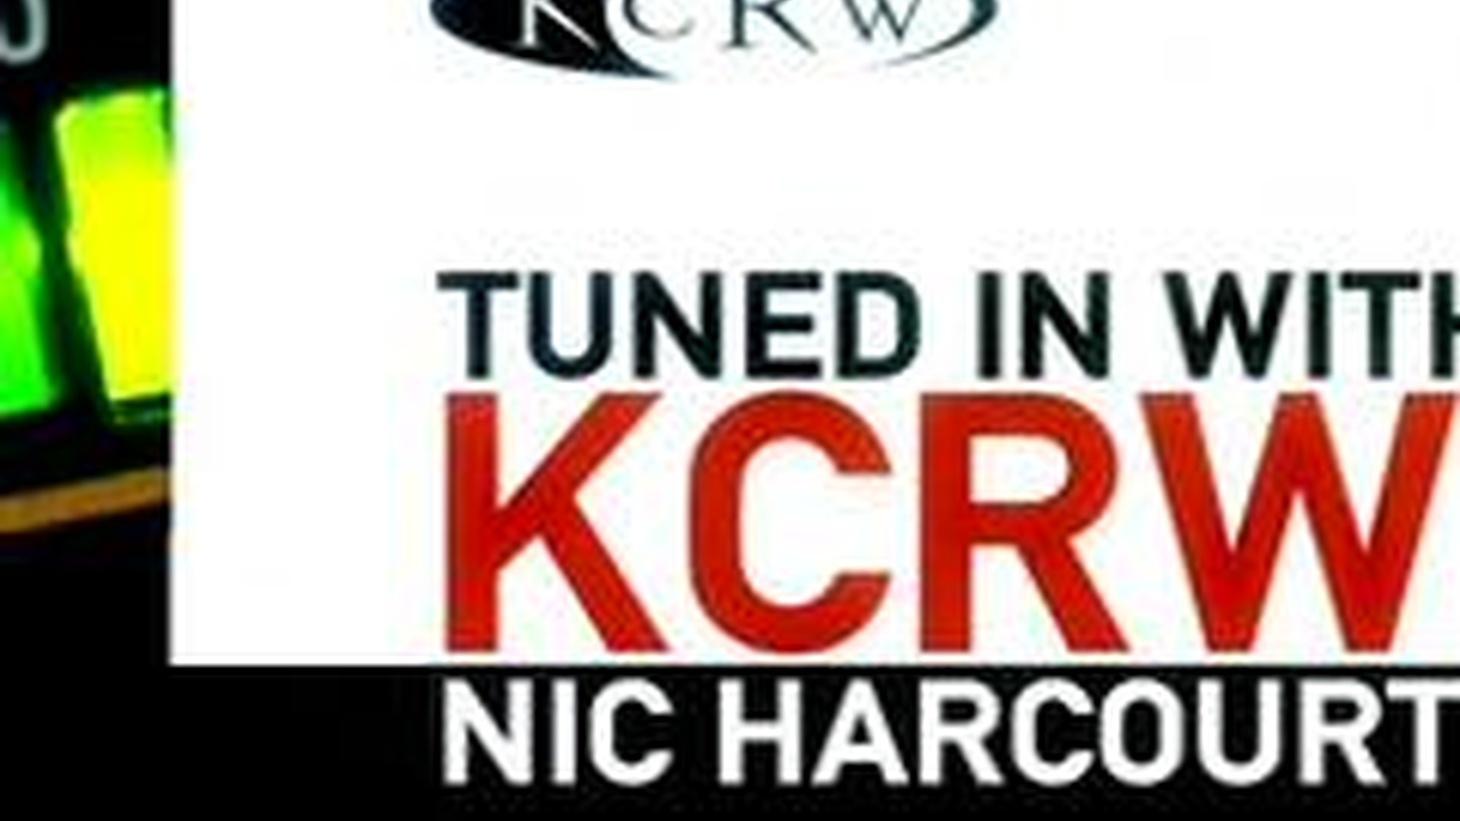 In this episode of Tuned In with KCRW's Nic Harcourt, Nic introduces five essential new albums: Sigur Ros with their new single Gobbledigook, The Dandy Warhols...